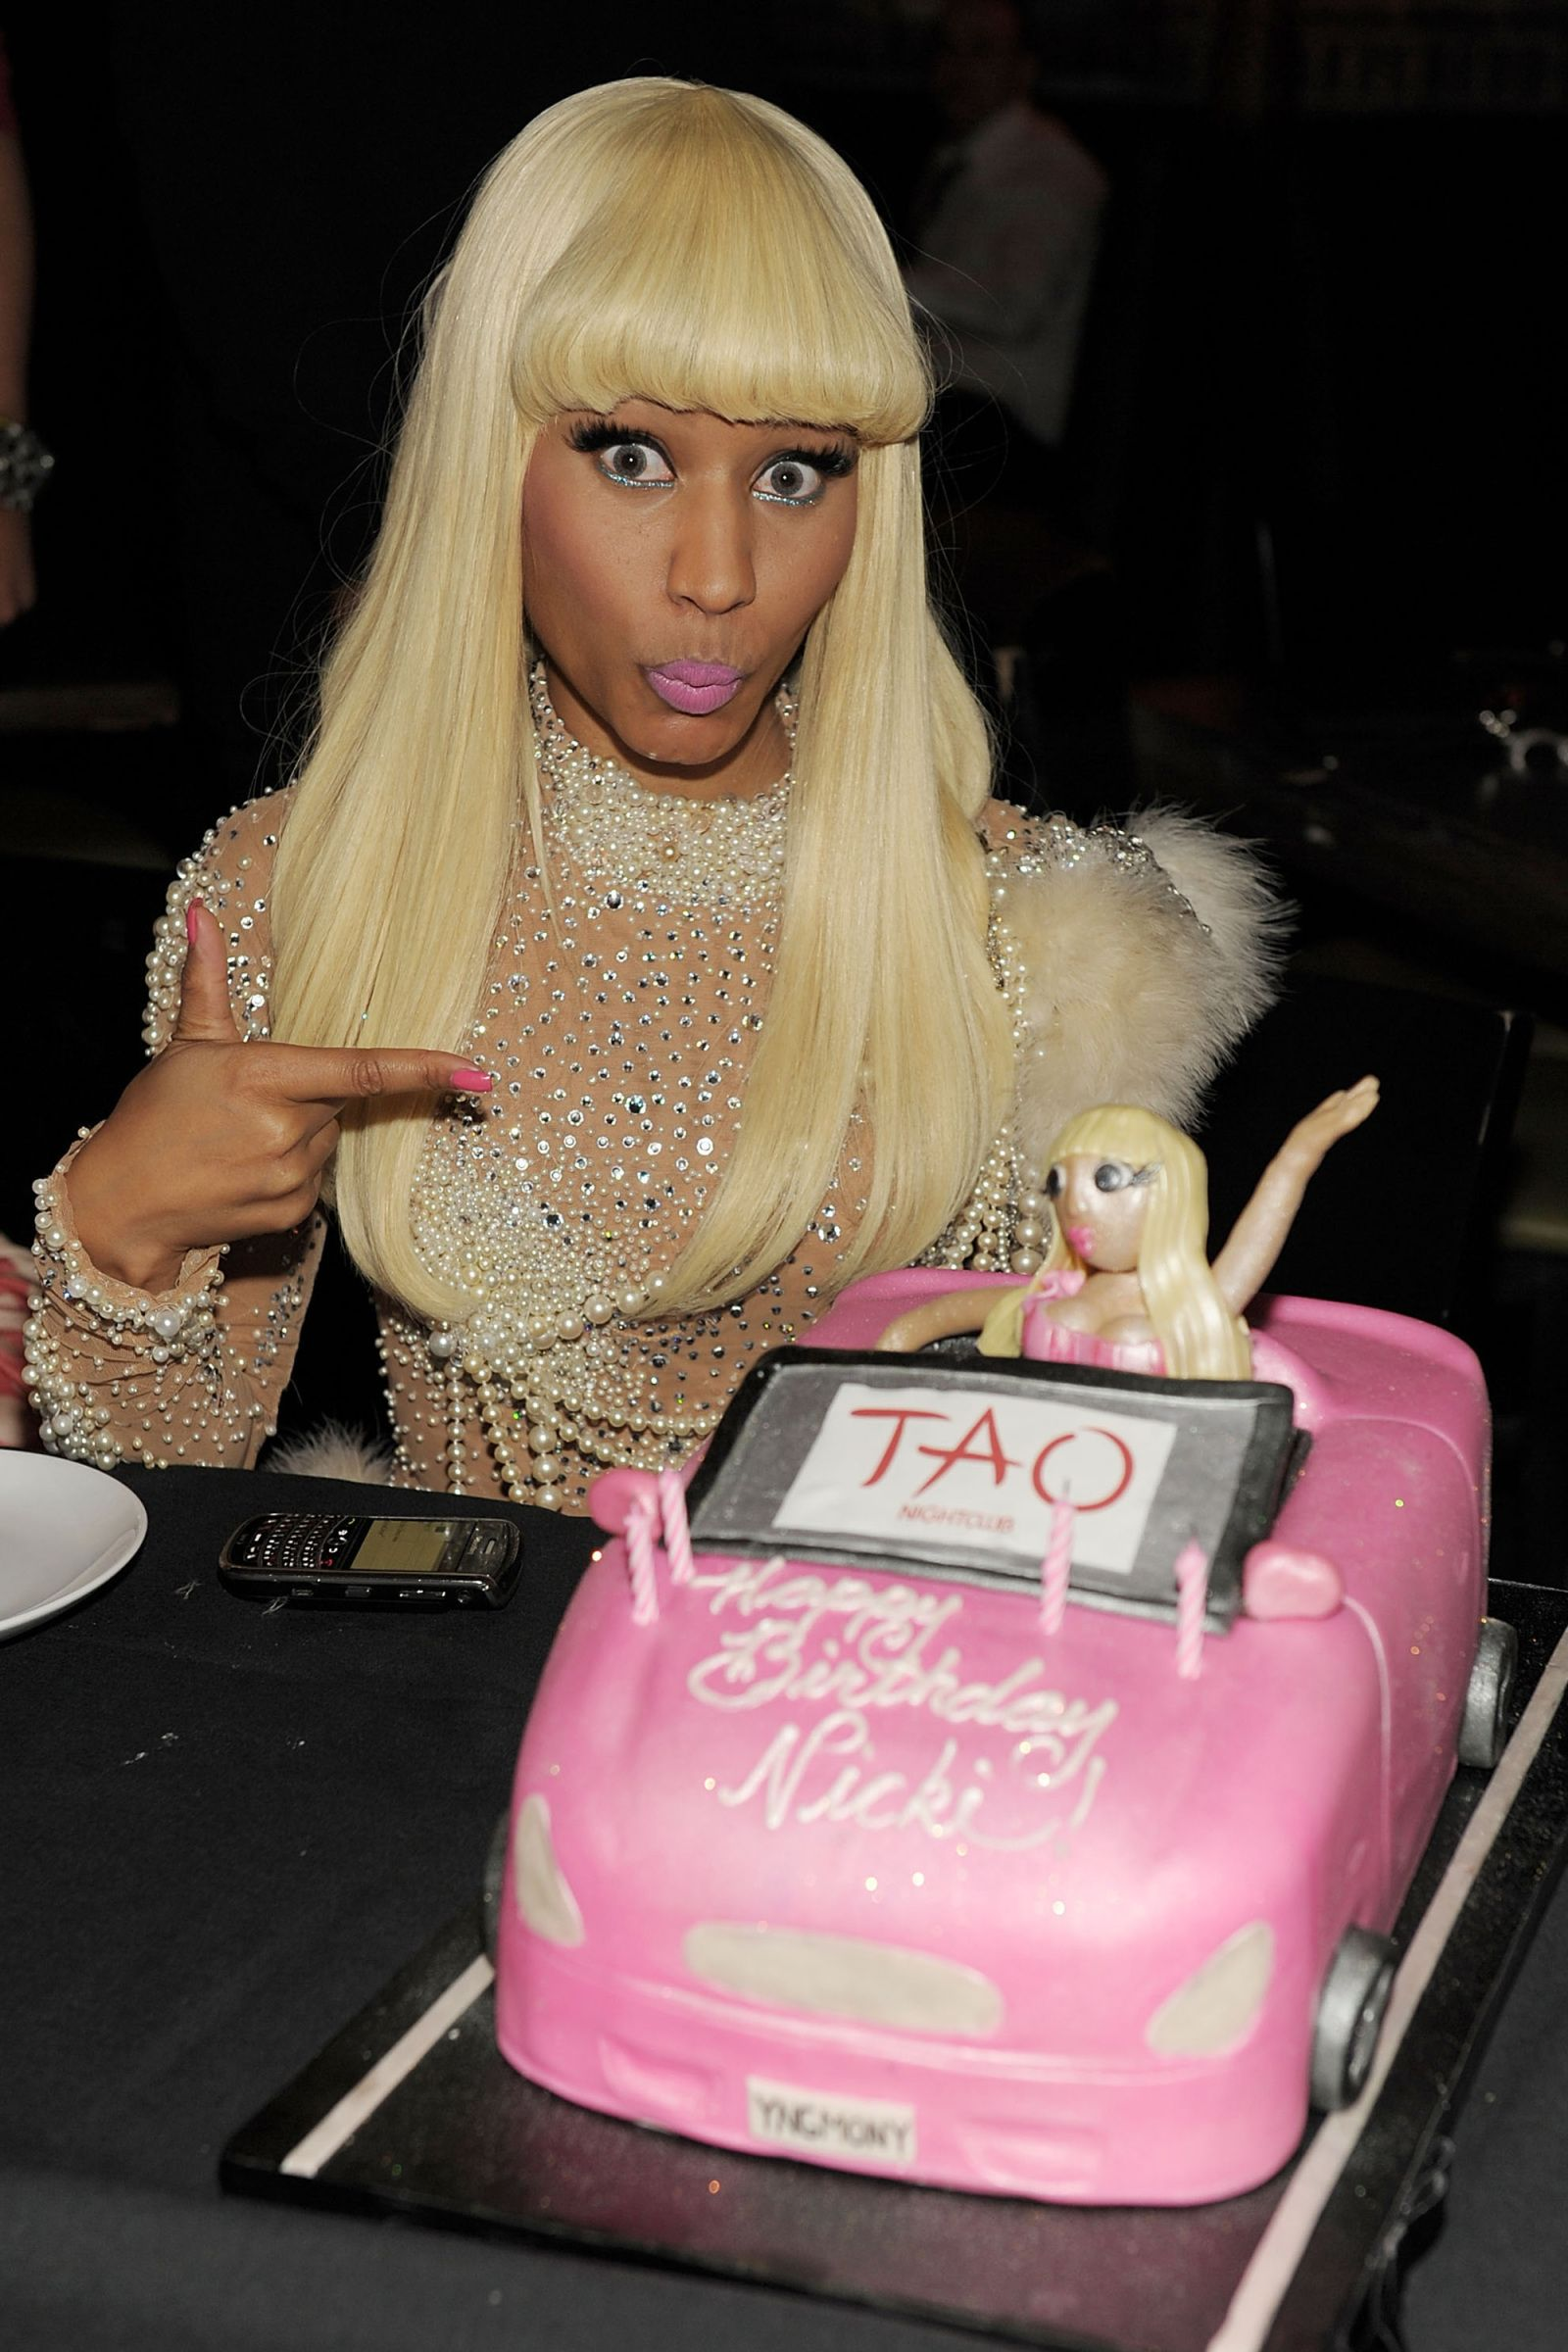 Nicki Minaj poses with her birthday cake.